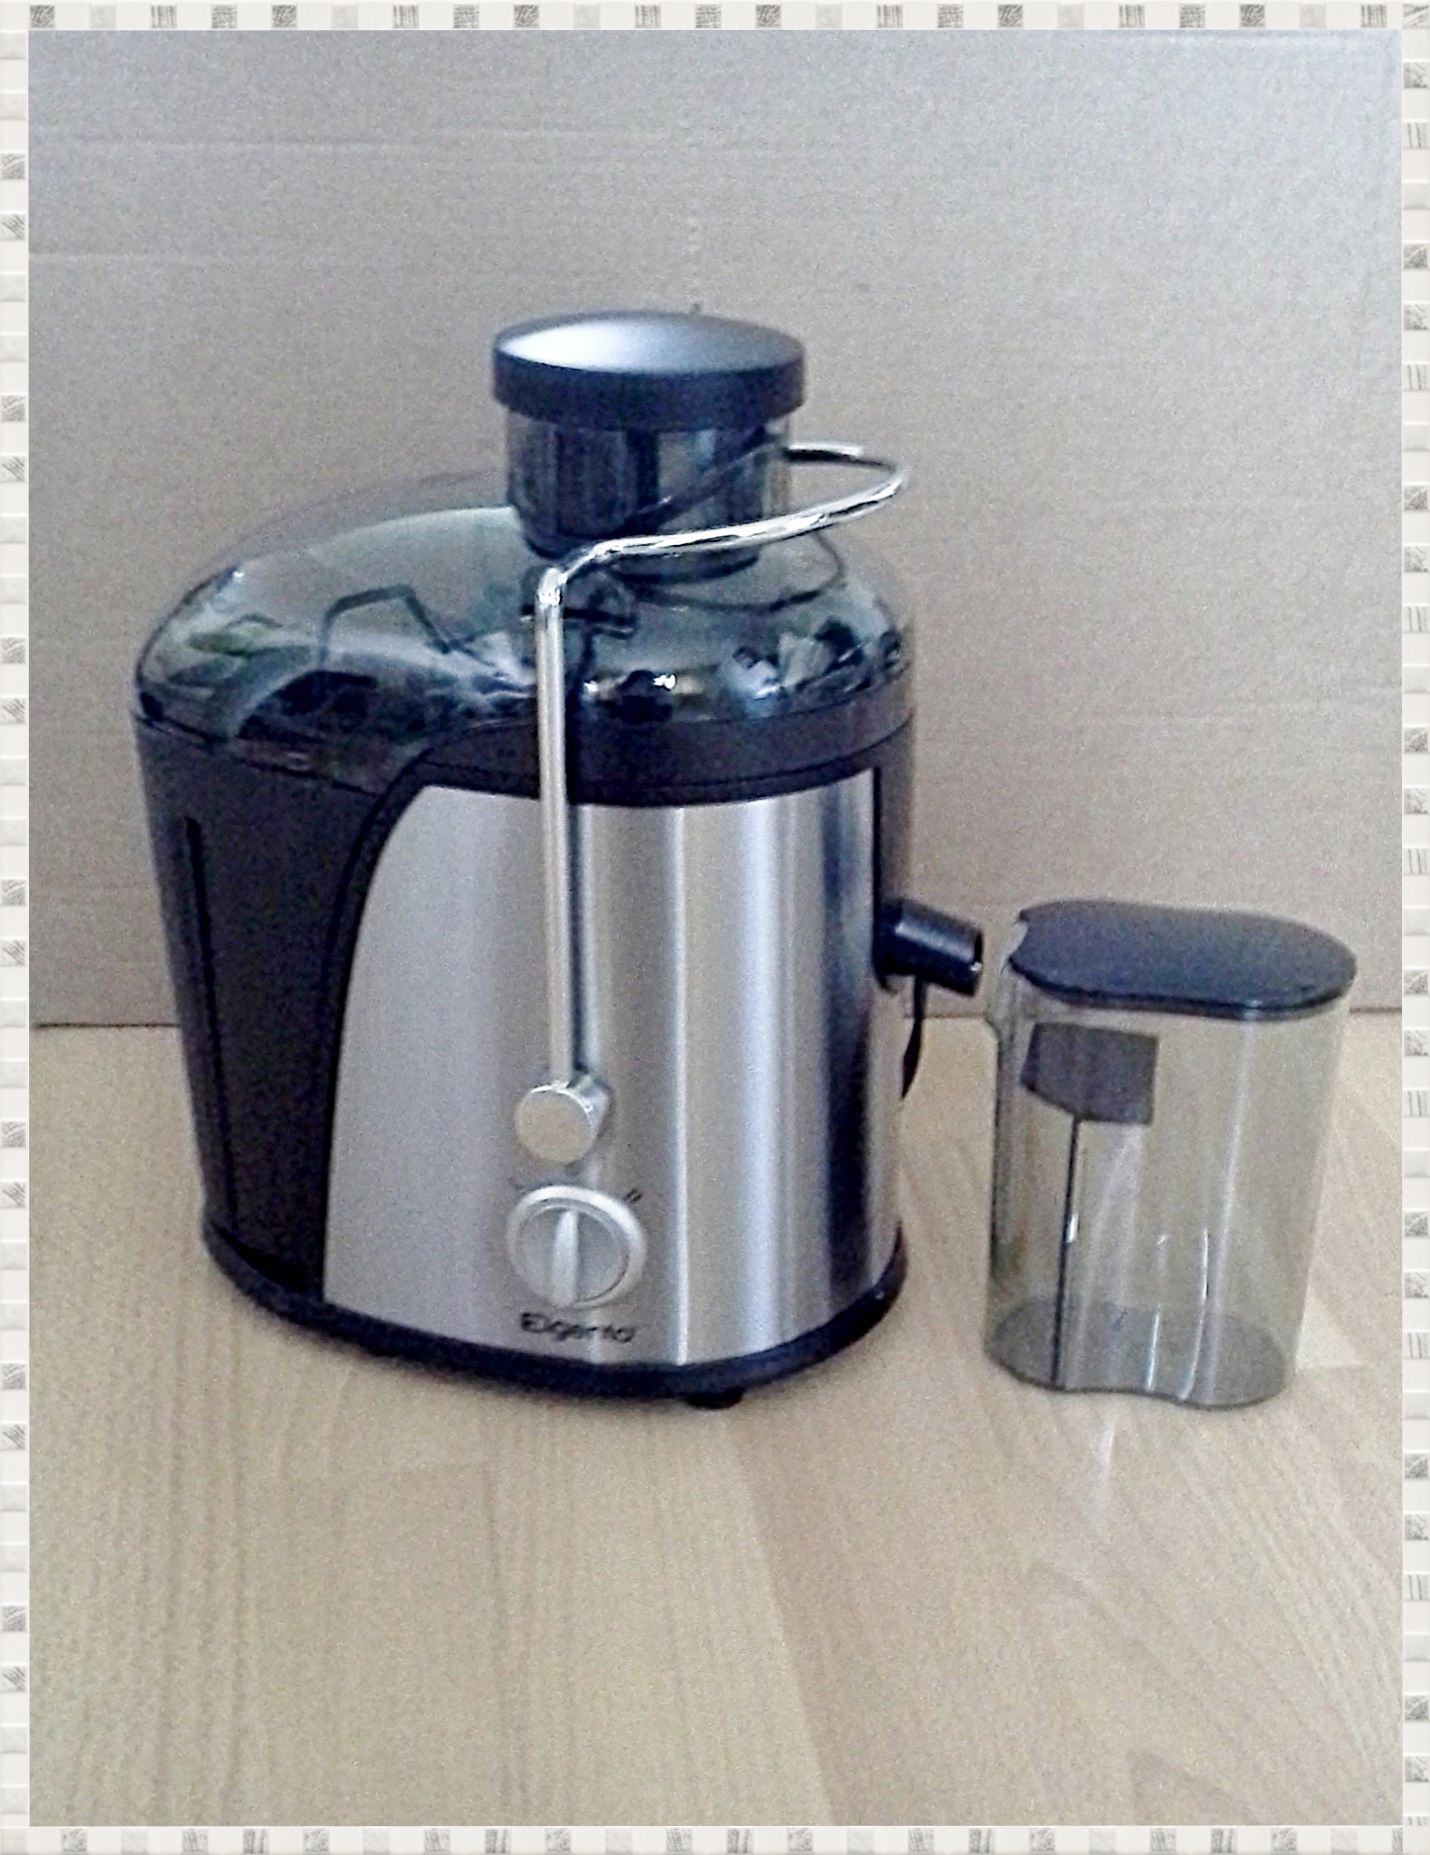 A great way to a healthier lifestyle - Enjoy a fresh healthy juice in seconds with this Elegento Juicer – NOW ONLY £35. Features: Large feed tube for full sized apples/fruits. 400W, 2 speed control, easy clean, detachable parts, 1.3L pulp container, 350ml juice cup, stainless steel blades and filter, overheat protection, fruit juice in seconds. Size 30 x 27 x 19cm